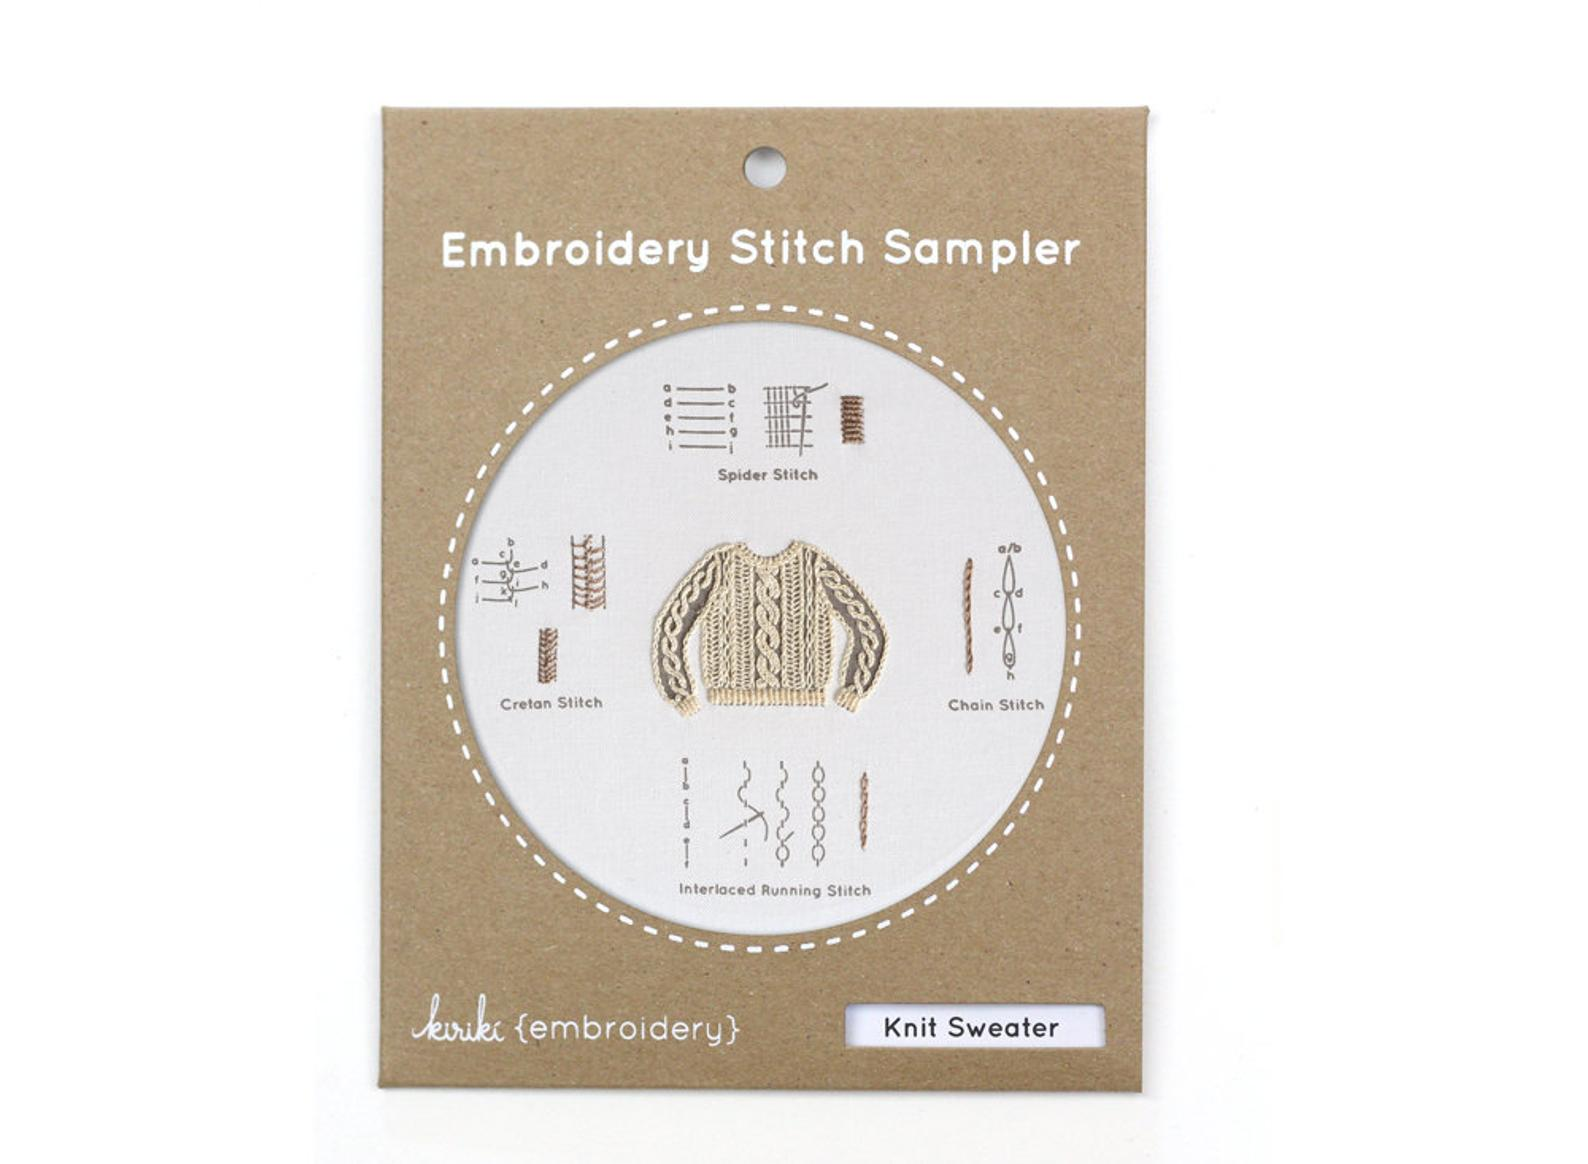 Kiriki Press Embroidery Stitch Sampler, Knit Sweater